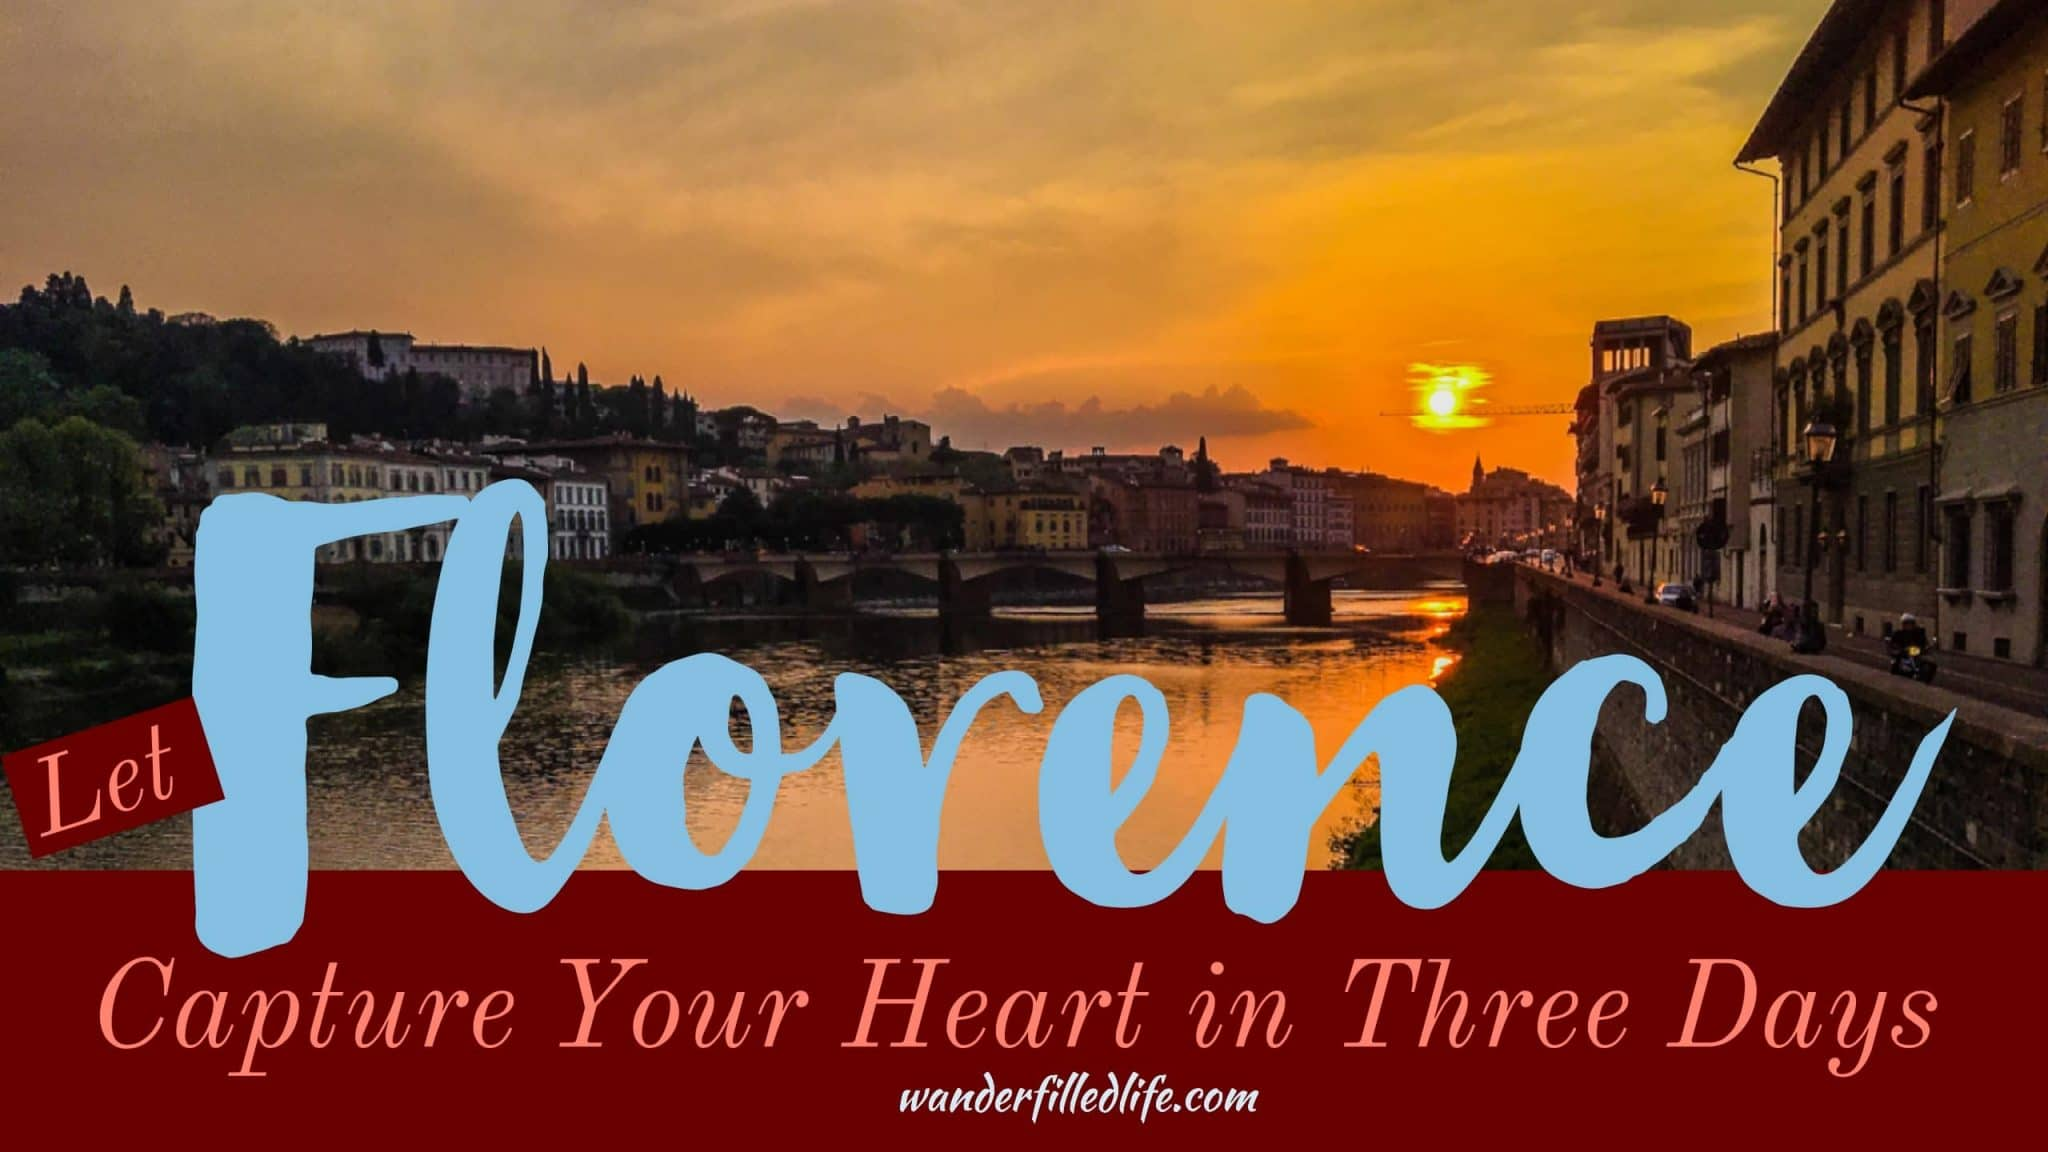 Let Florence Capture Your Heart in Three Days